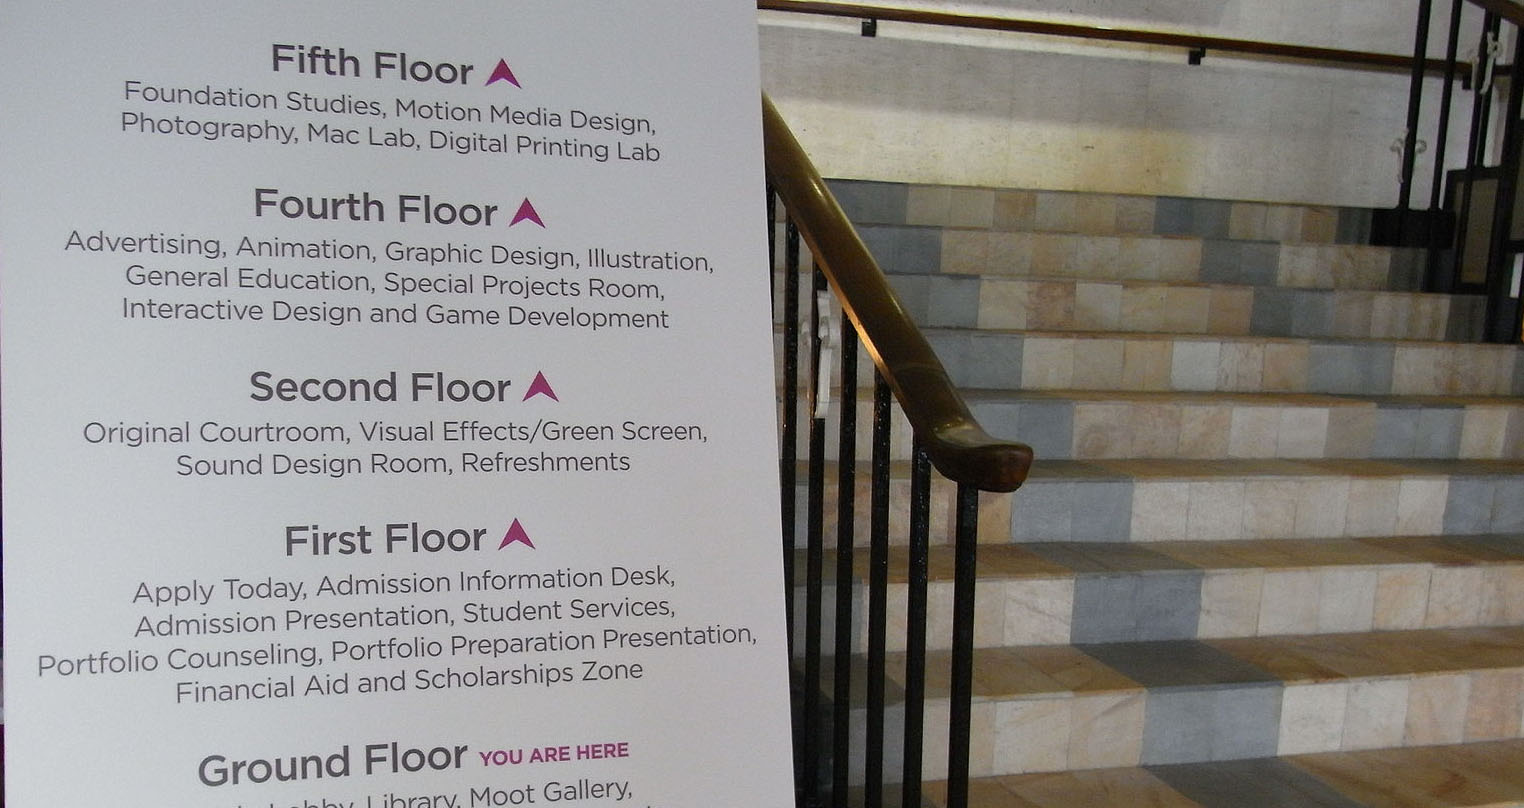 Help Your People Get Where They Are Going With Directory Signs